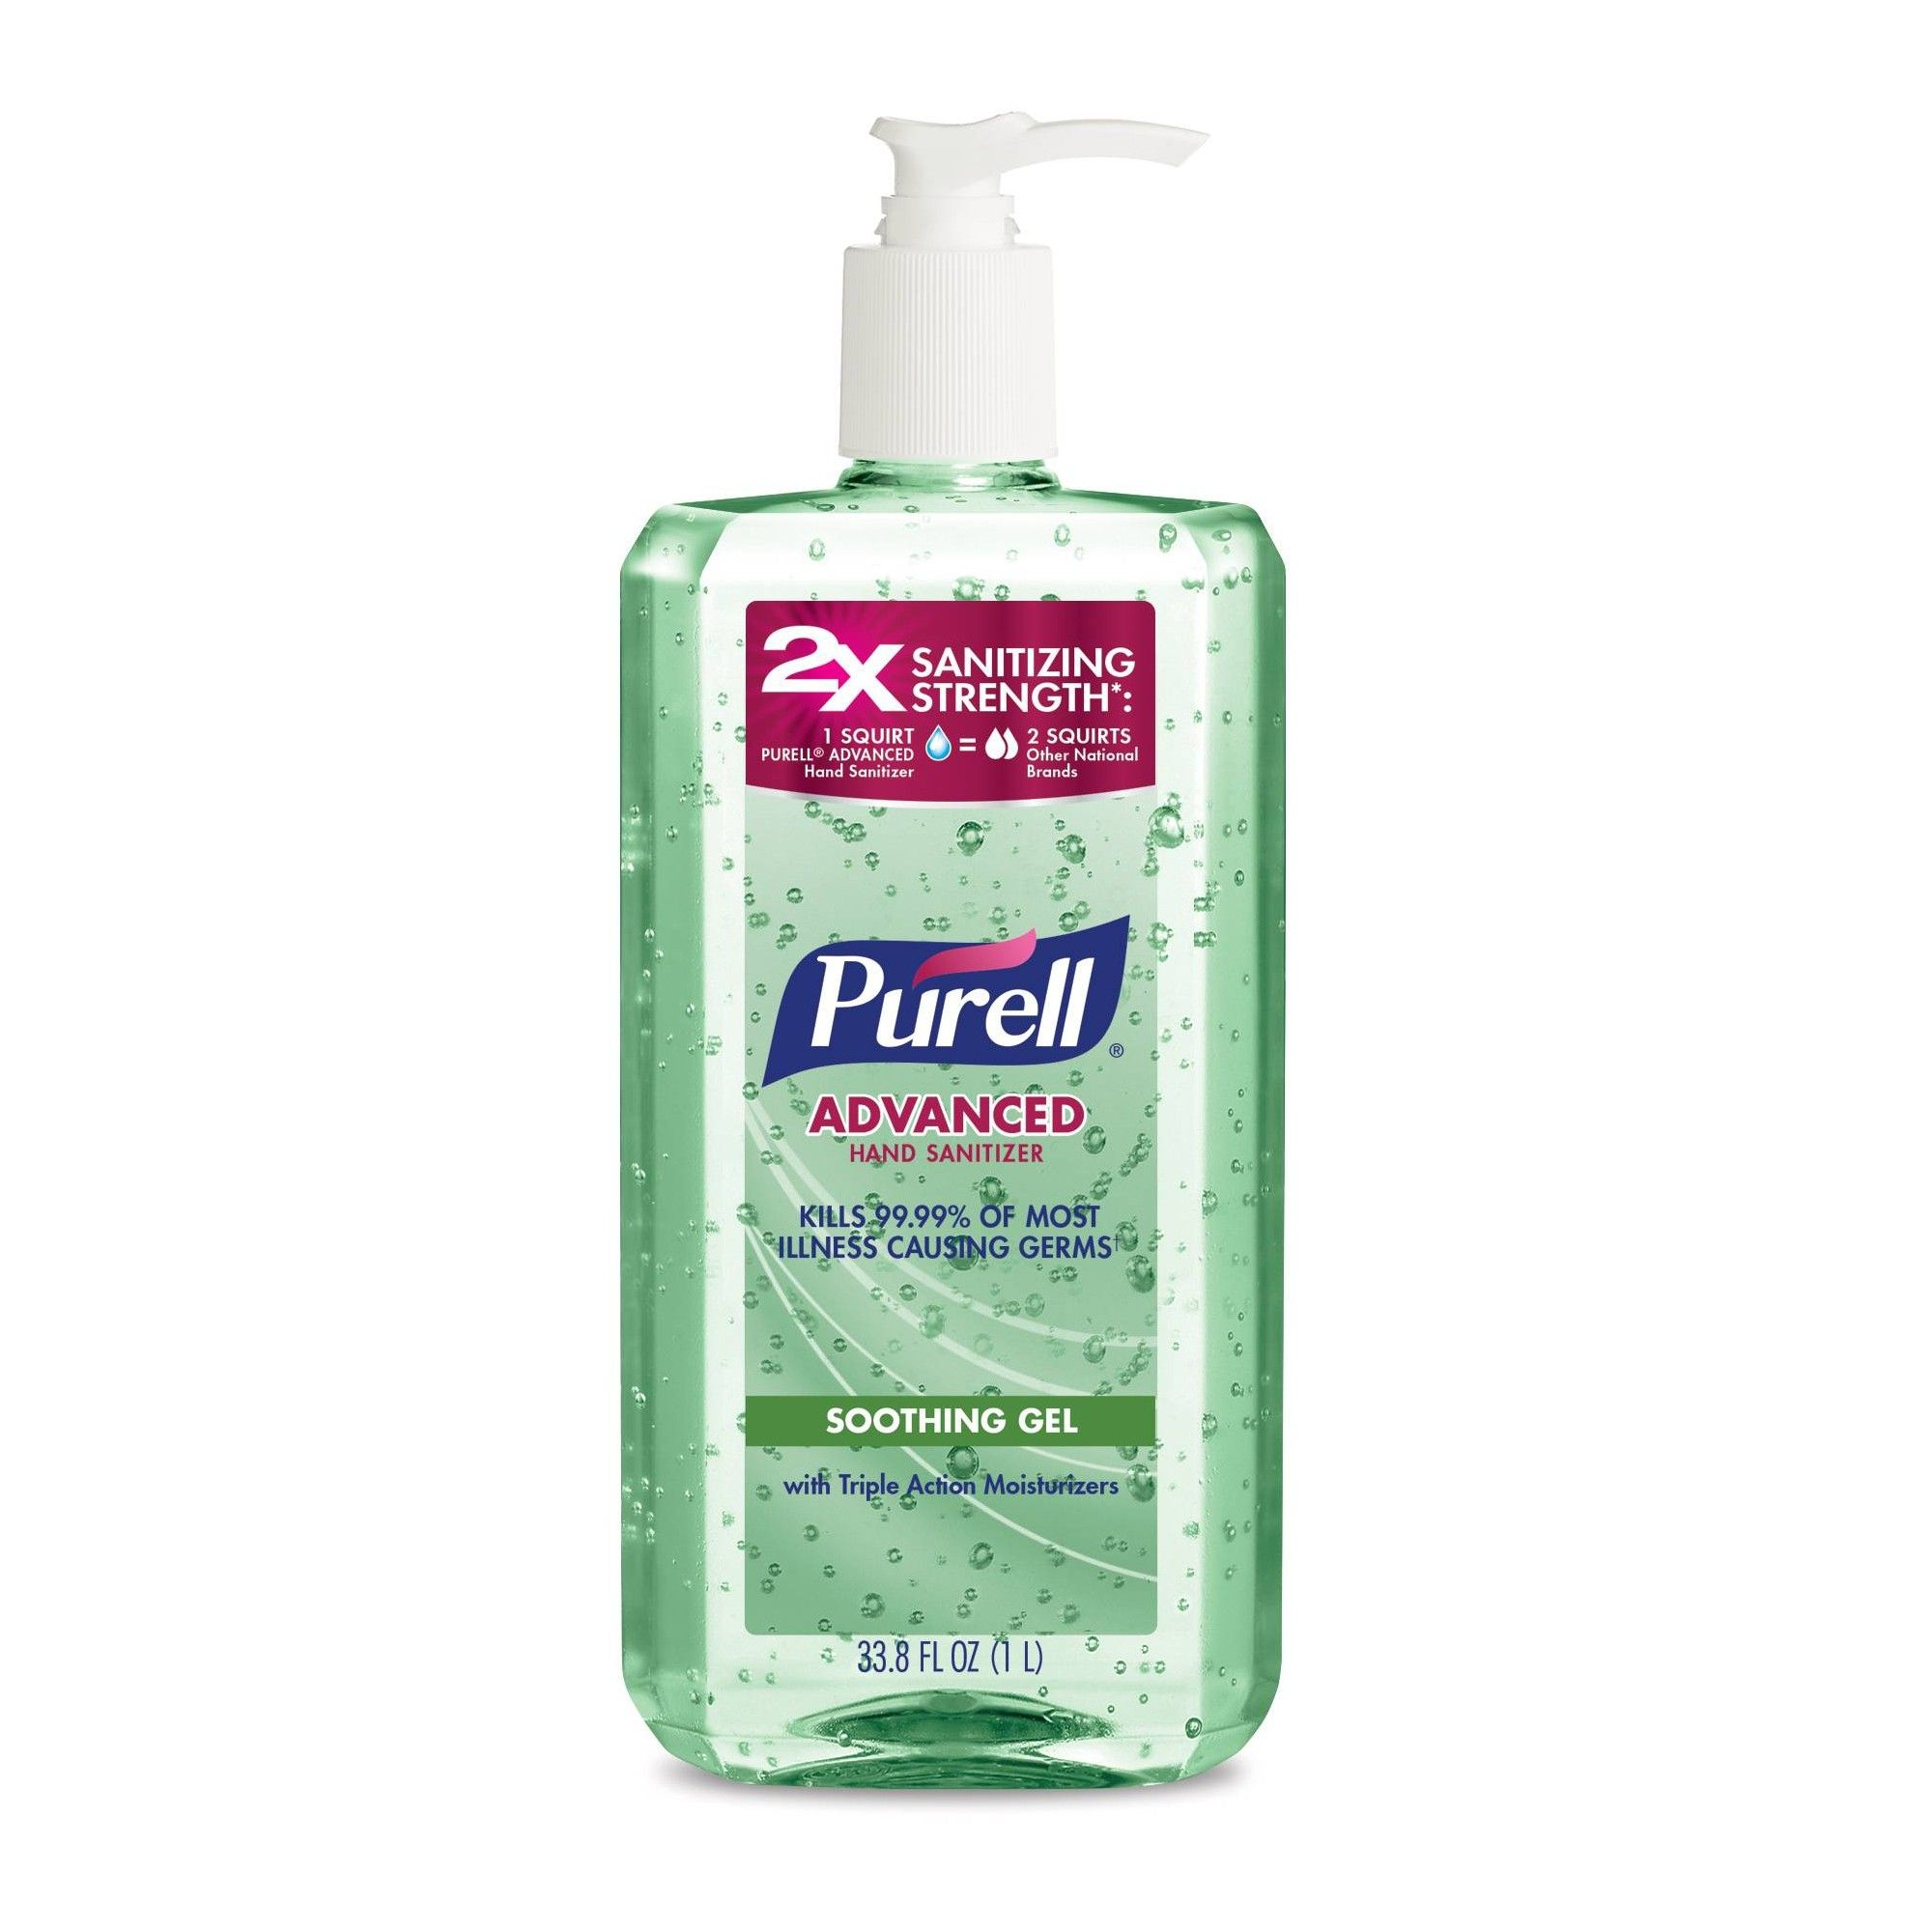 Purell Home Wellness Kit Hand Sanitizer Hand Sanitizer Purell